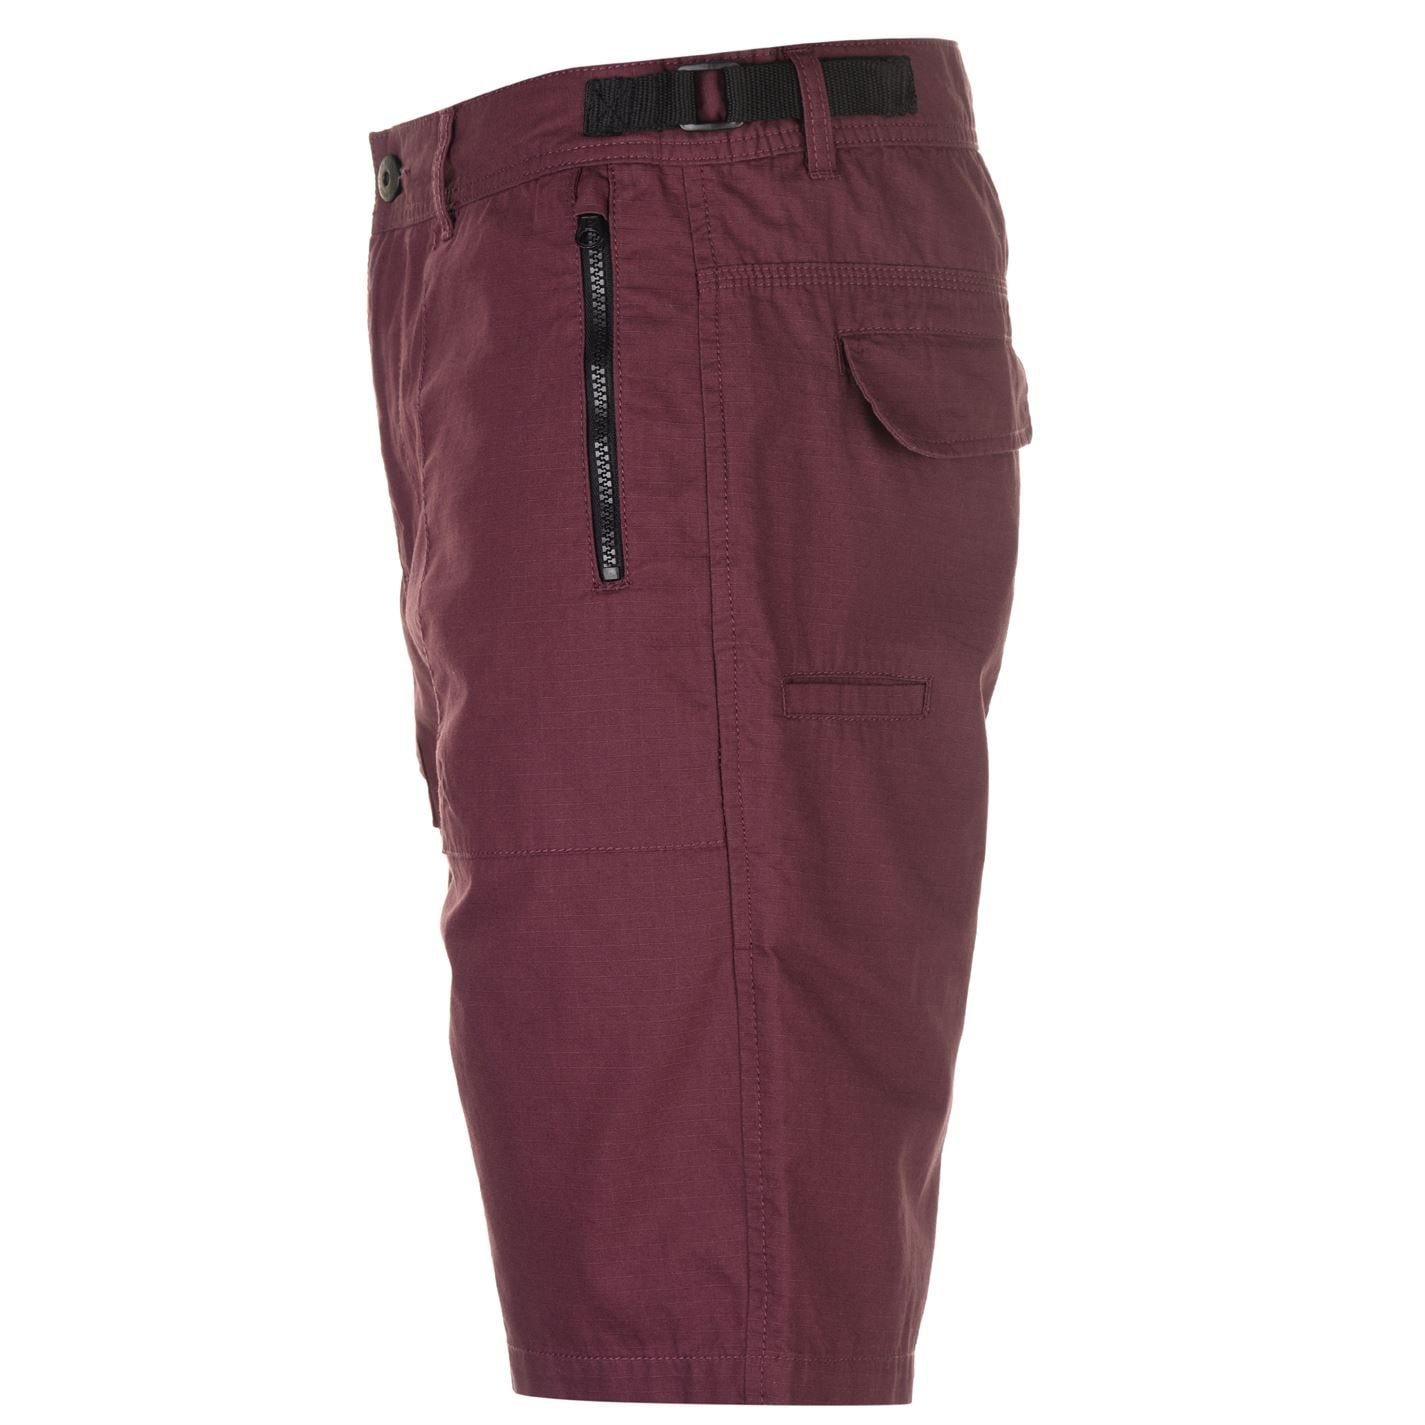 Pierre Cardin Mens Utility Shorts Casual Sports Activewear Bottoms